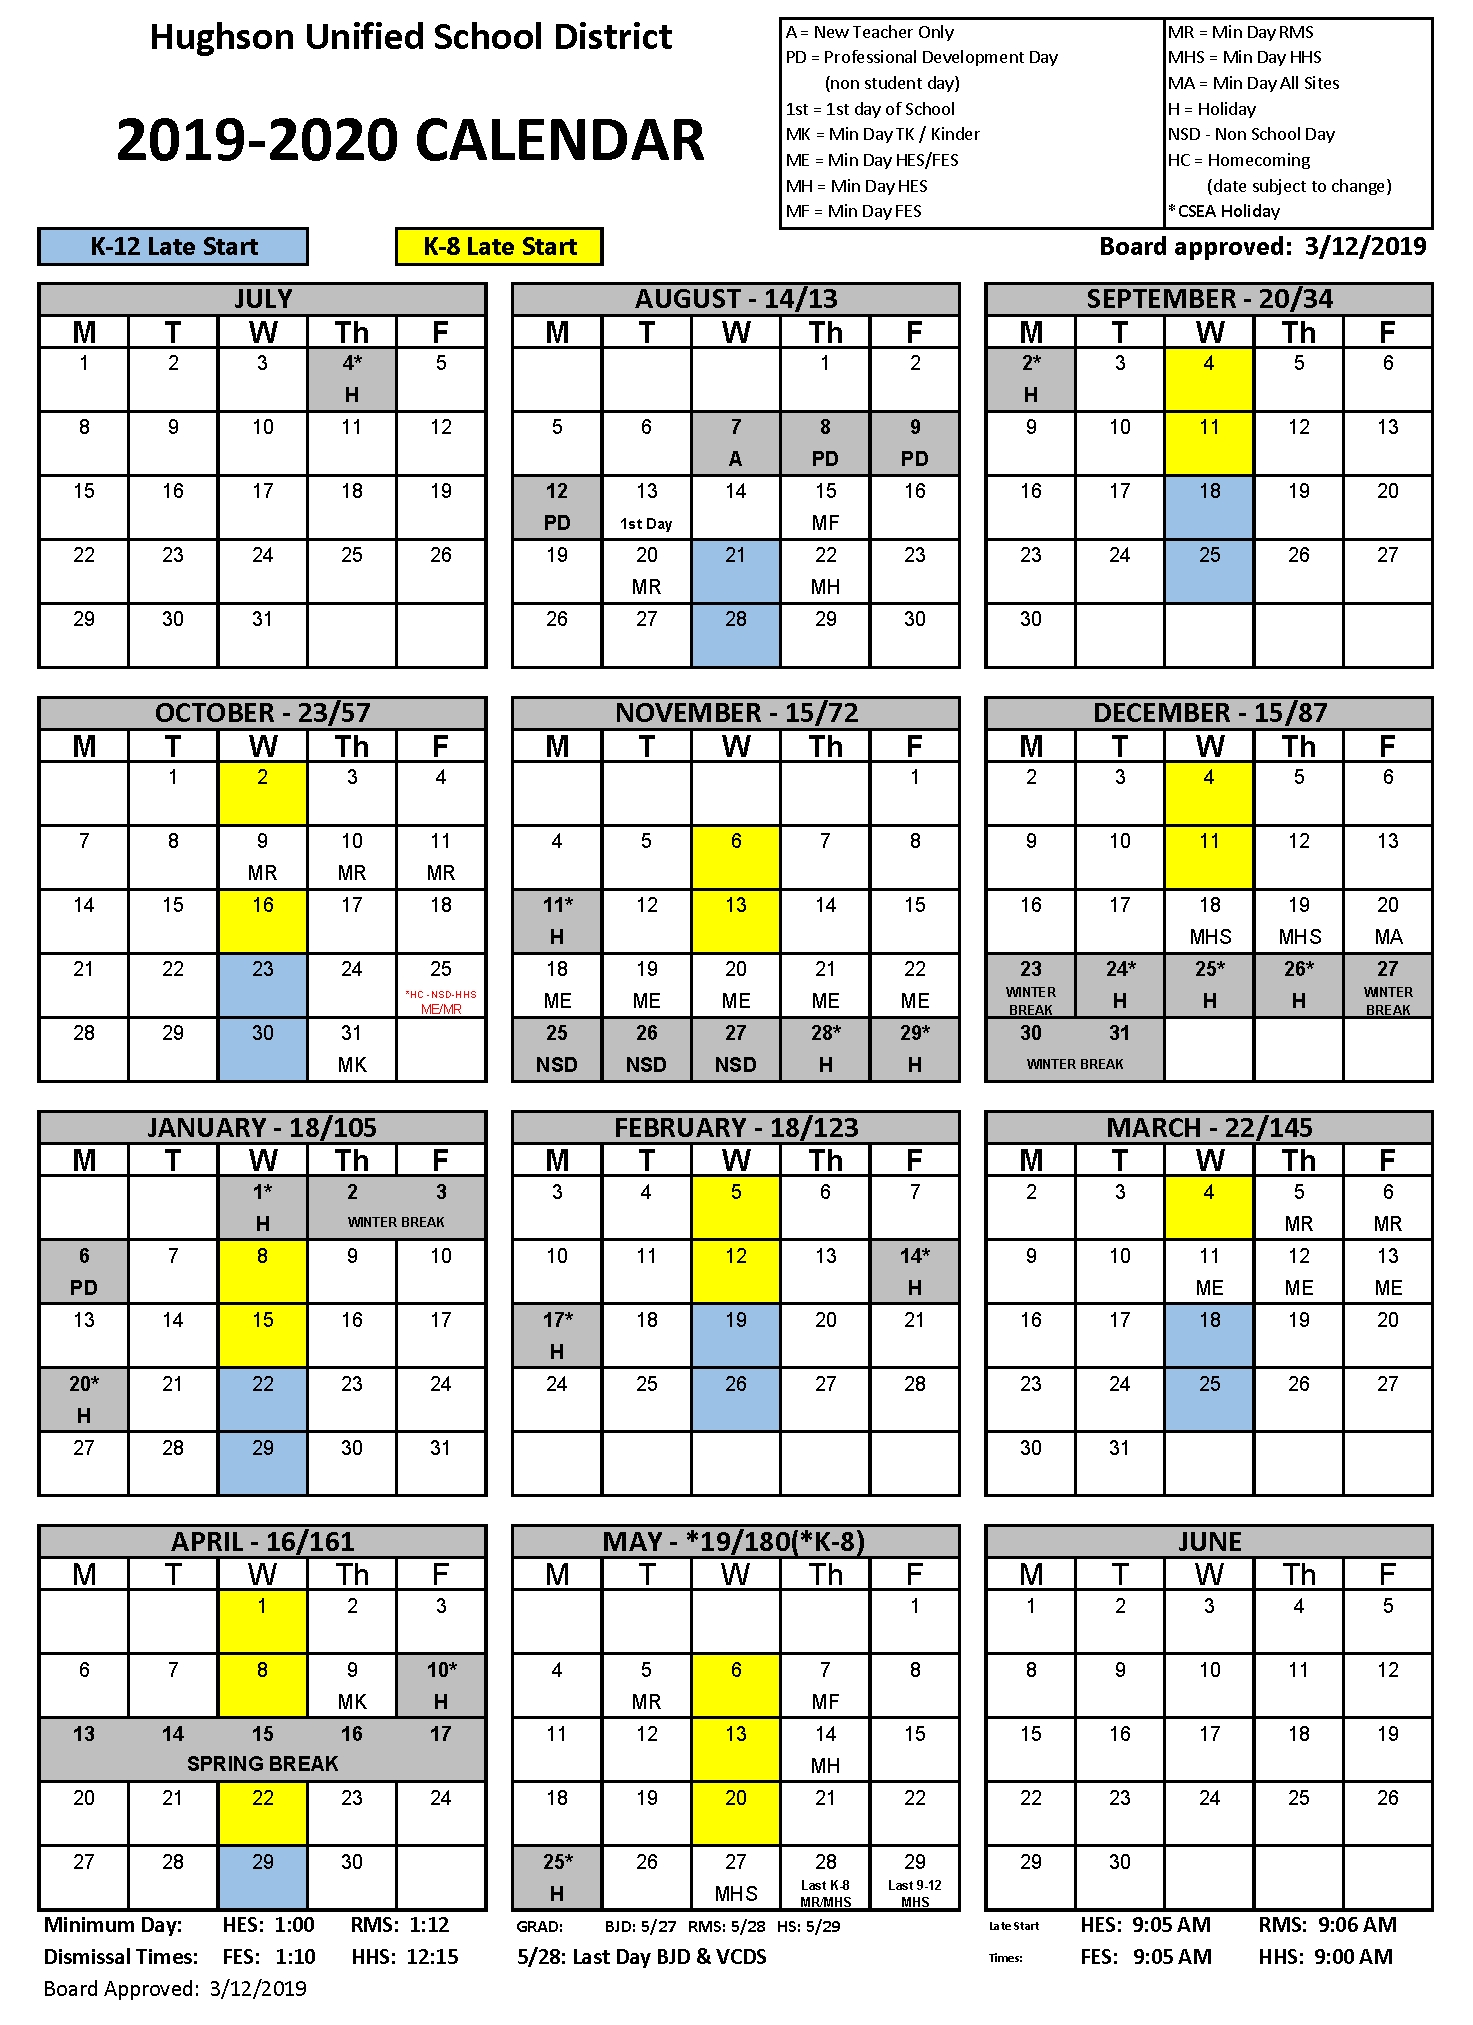 Calendar - Hughson Unified School District Exceptional Fox C-6 School Calendar